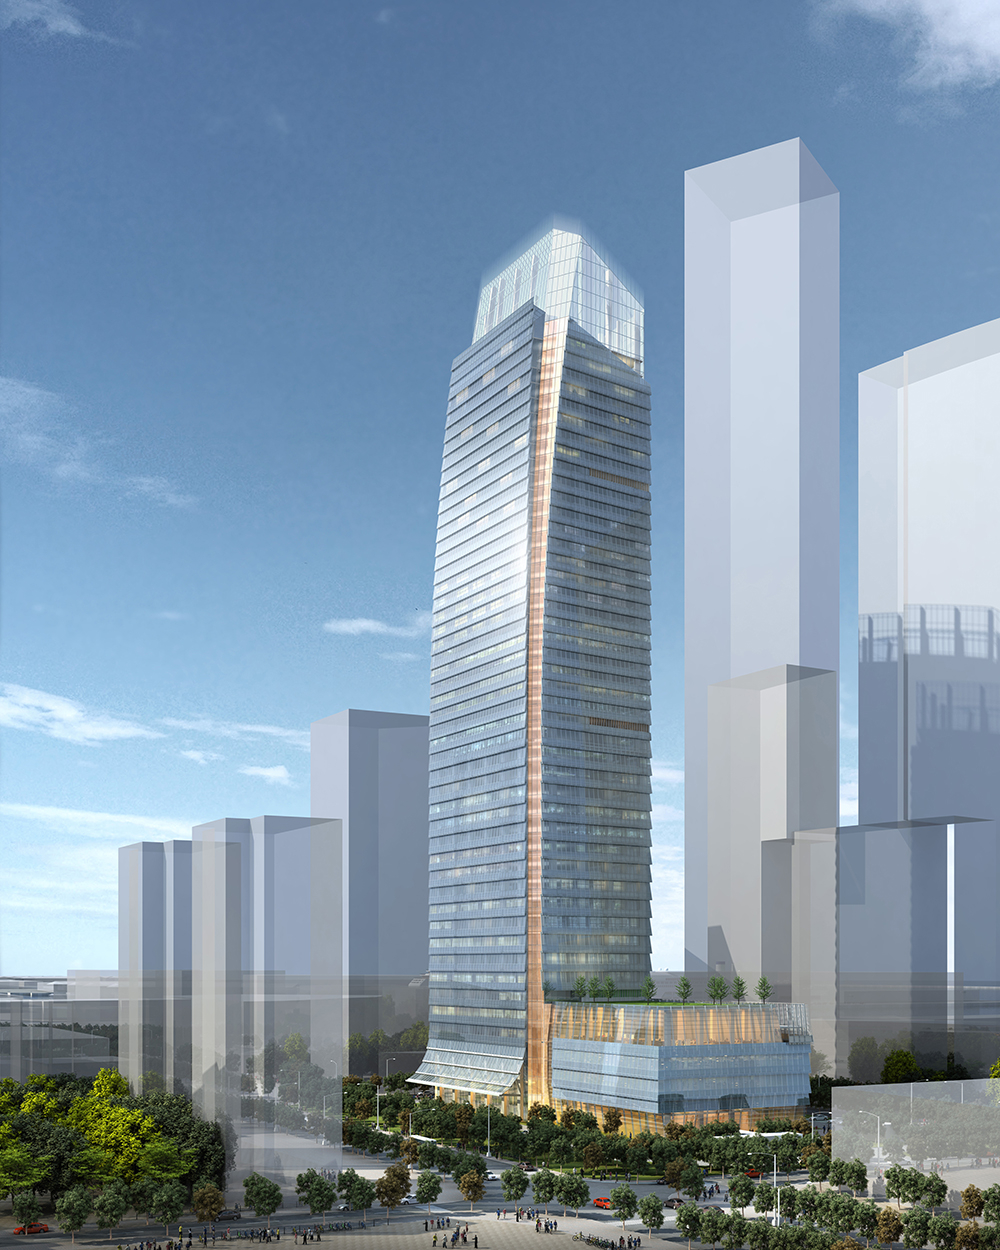 The Four Seasons Hotel Dalian will include approximately 250 guestrooms